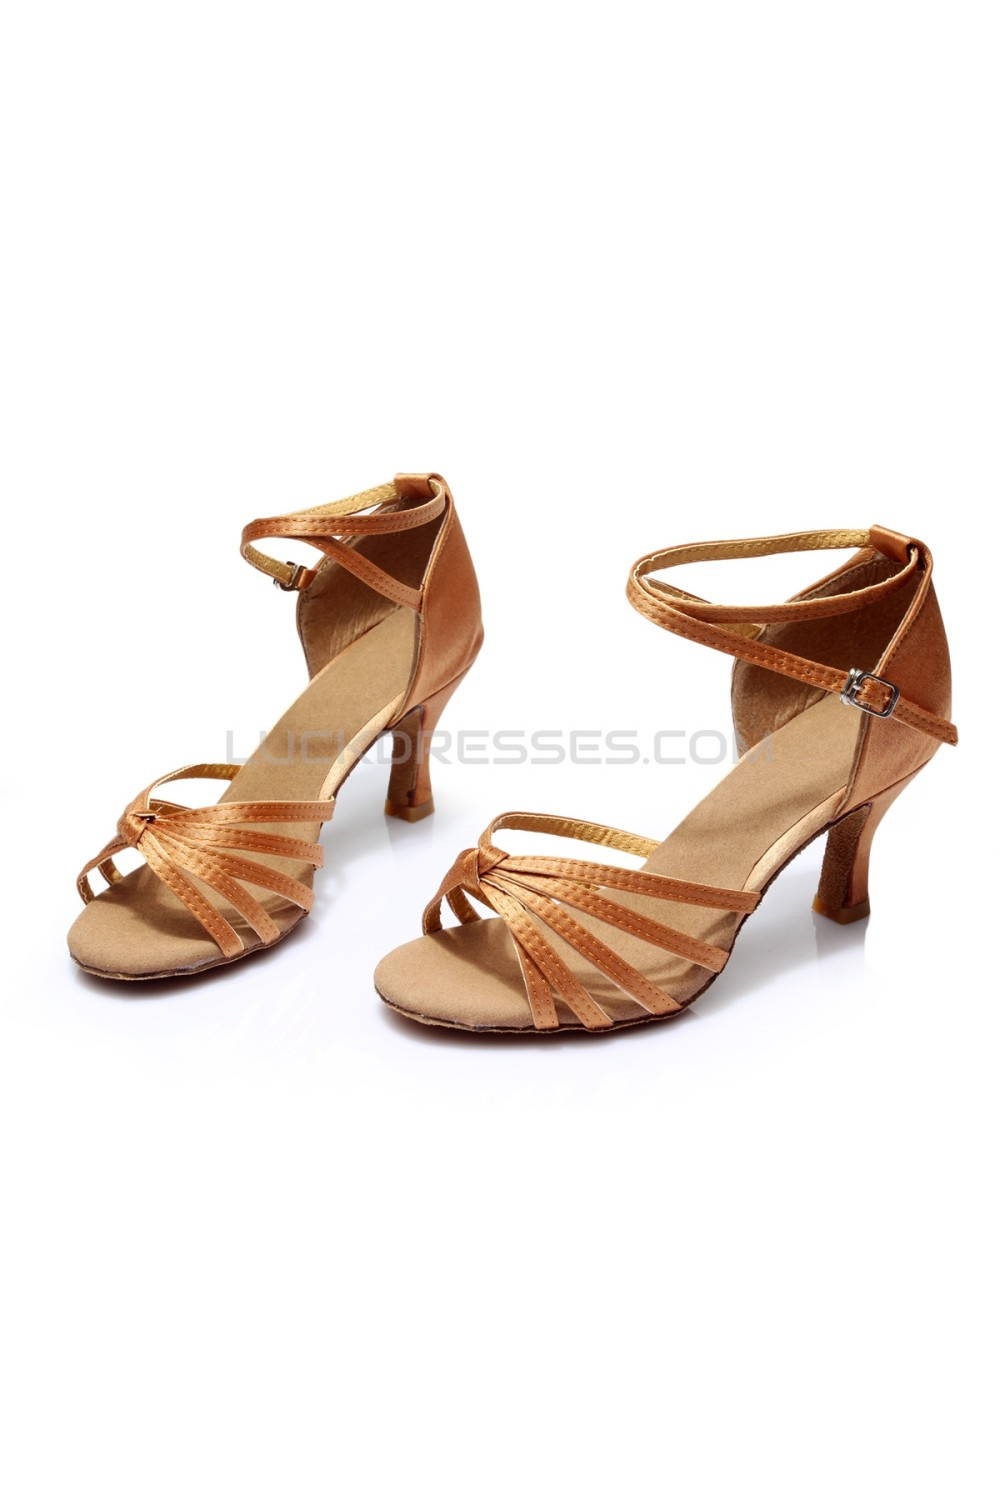 Women S Brown Satin Heels Sandals Latin Salsa With Ankle